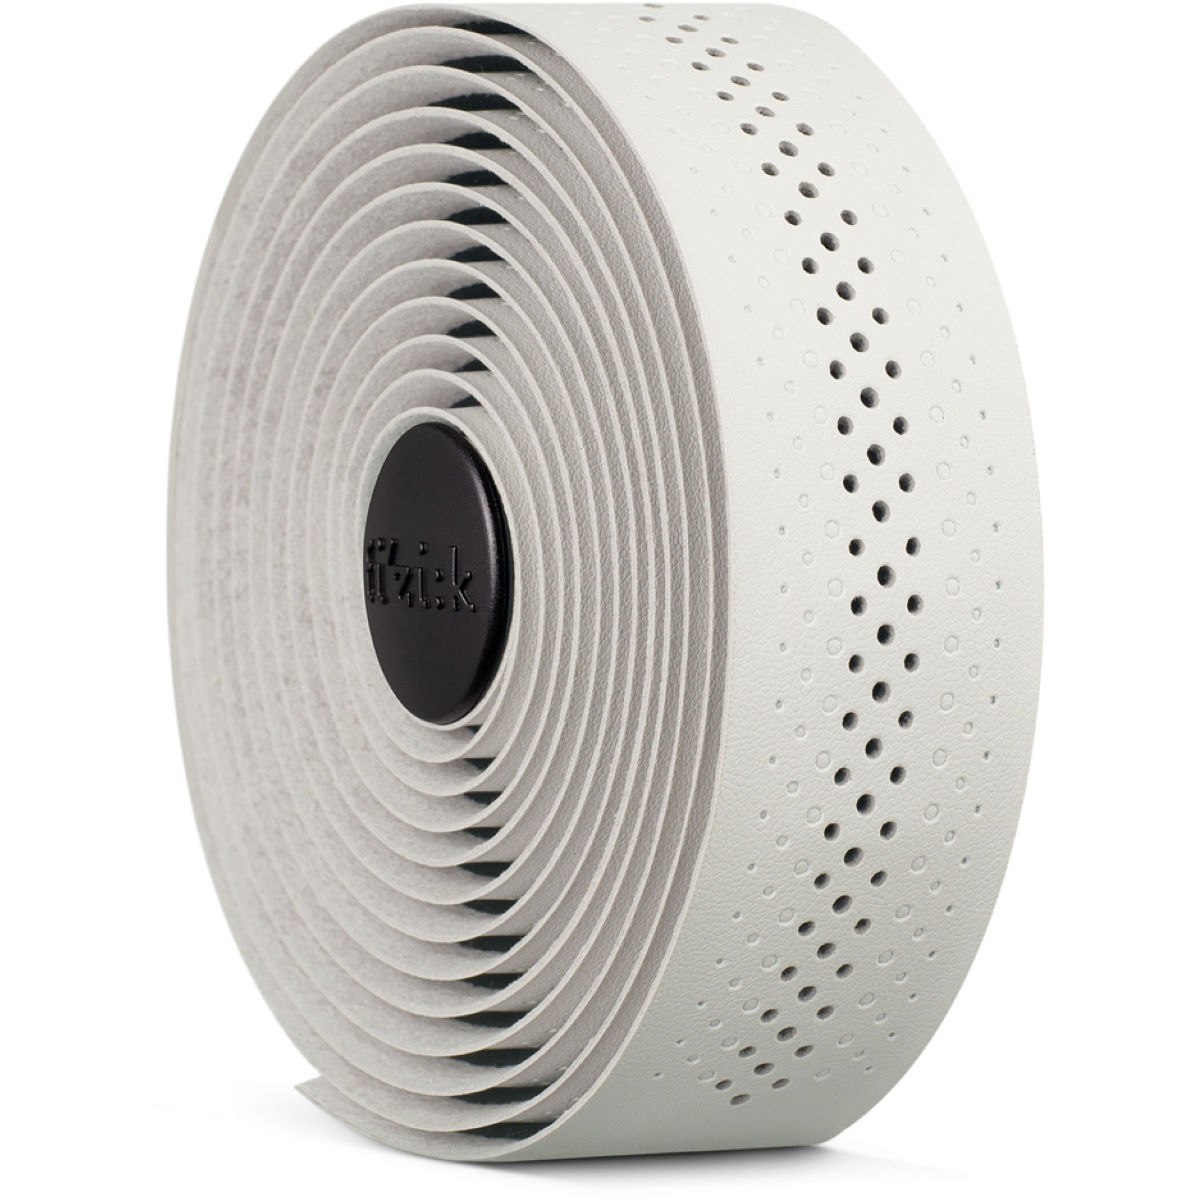 Fizik Tempo Microtex Bondcush Classic Bar Tape - One Size White